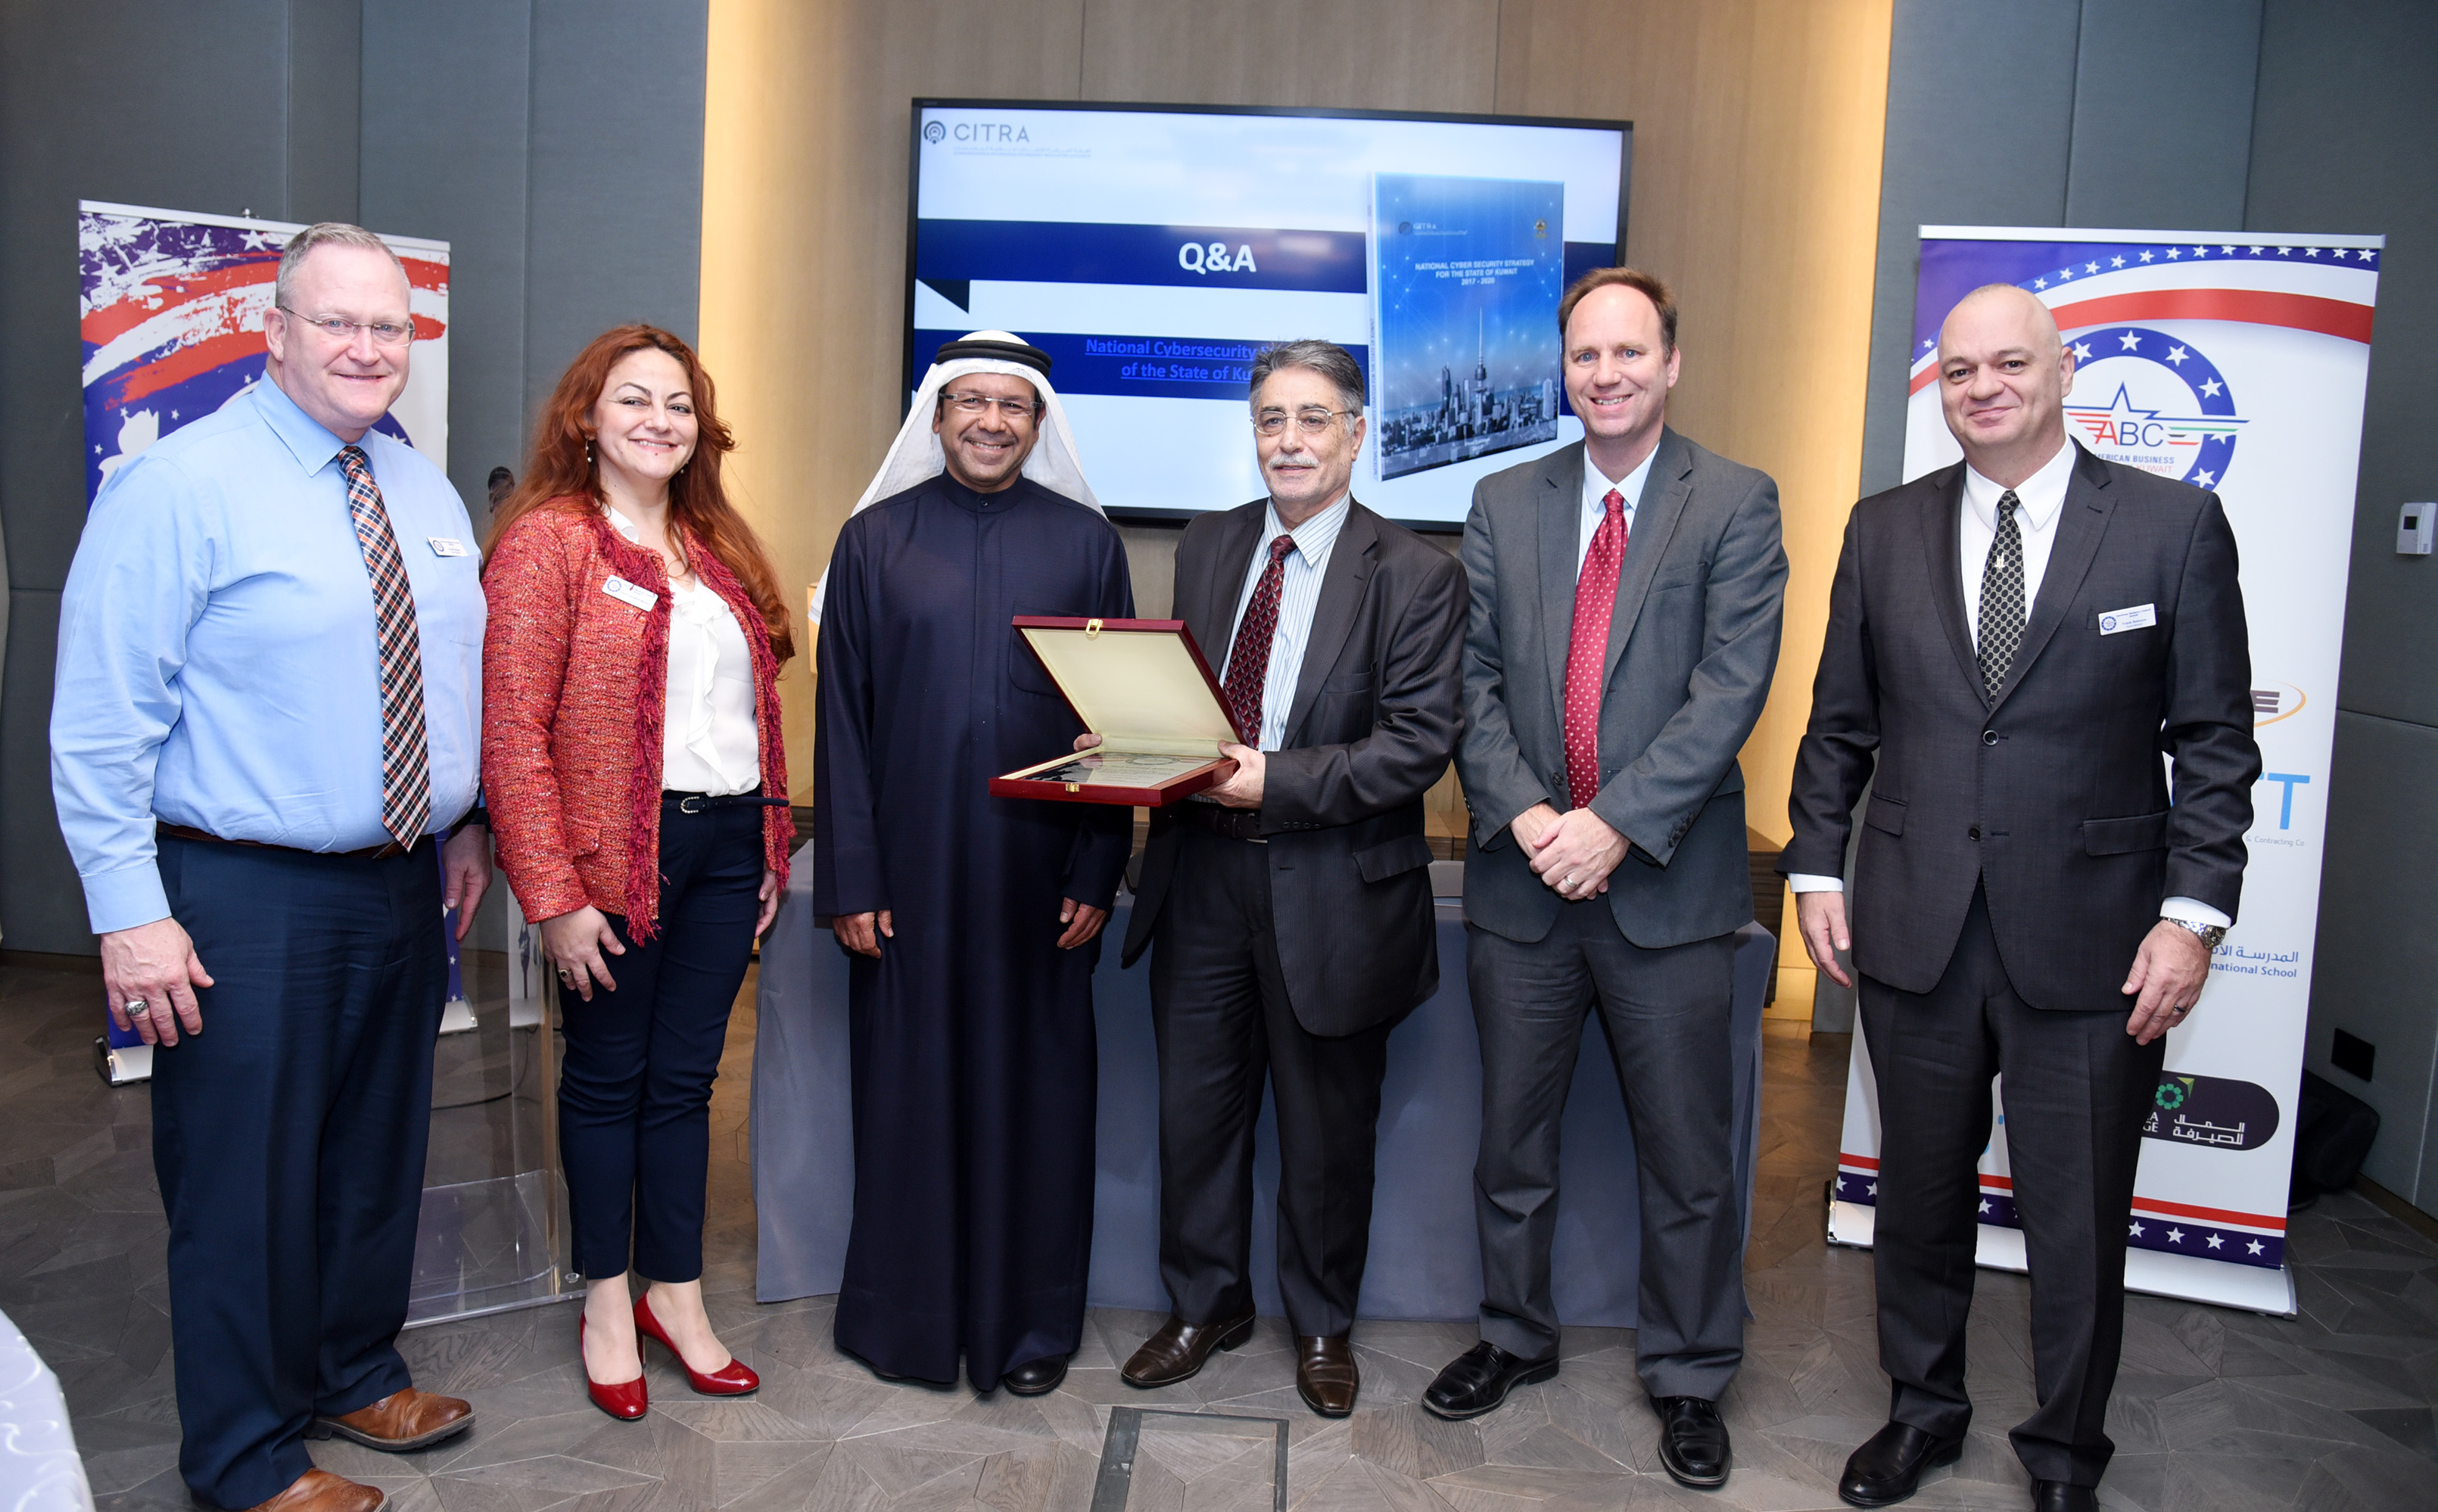 ABCK Speaker Series - January 2019 - American Business Council - Kuwait